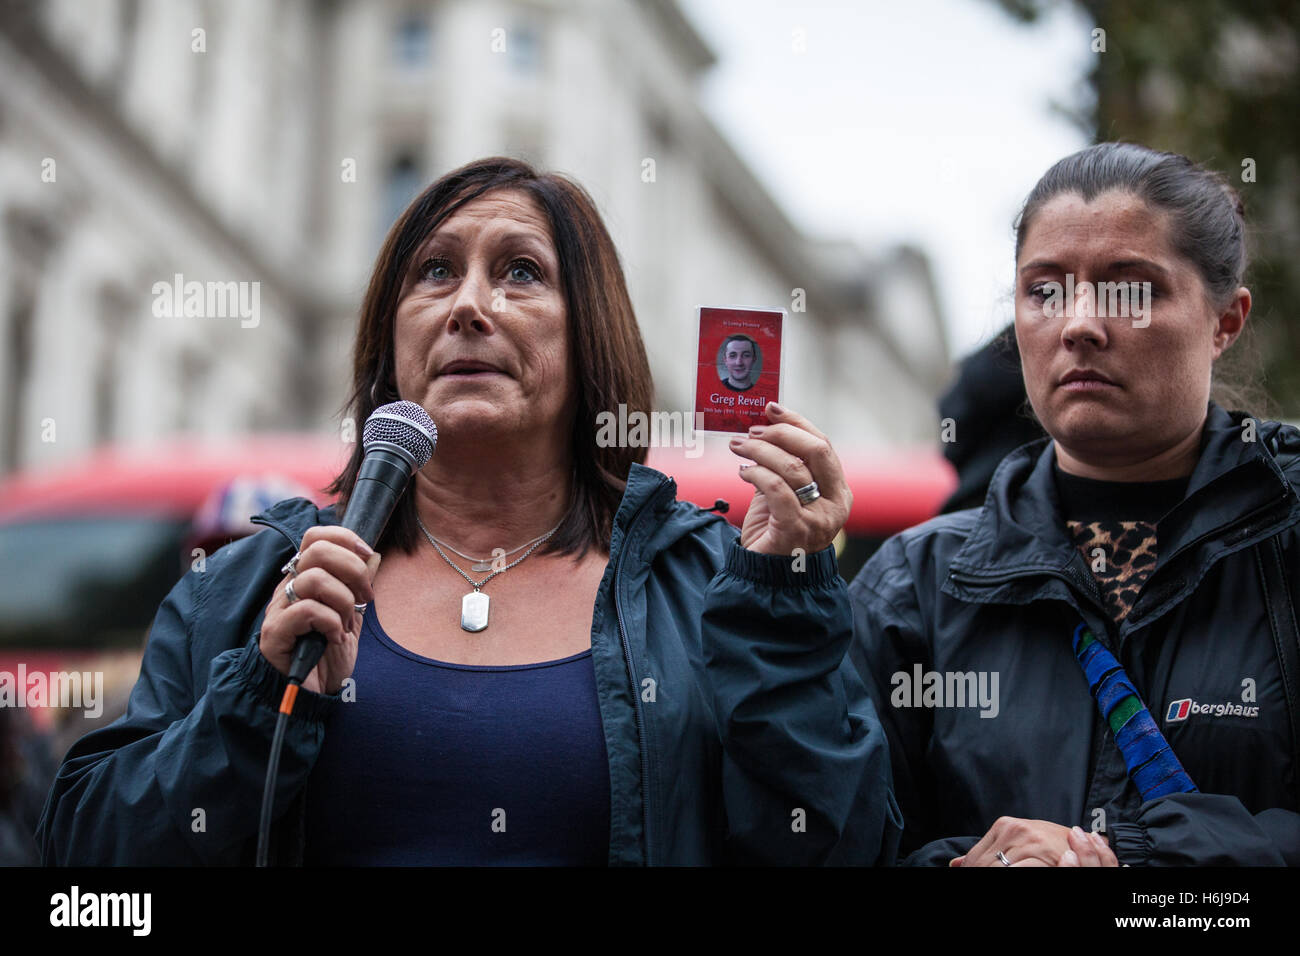 London, UK. 29th October, 2016. Karin Revell, mother of Greg Revell, addresses campaigners from the United Families - Stock Image